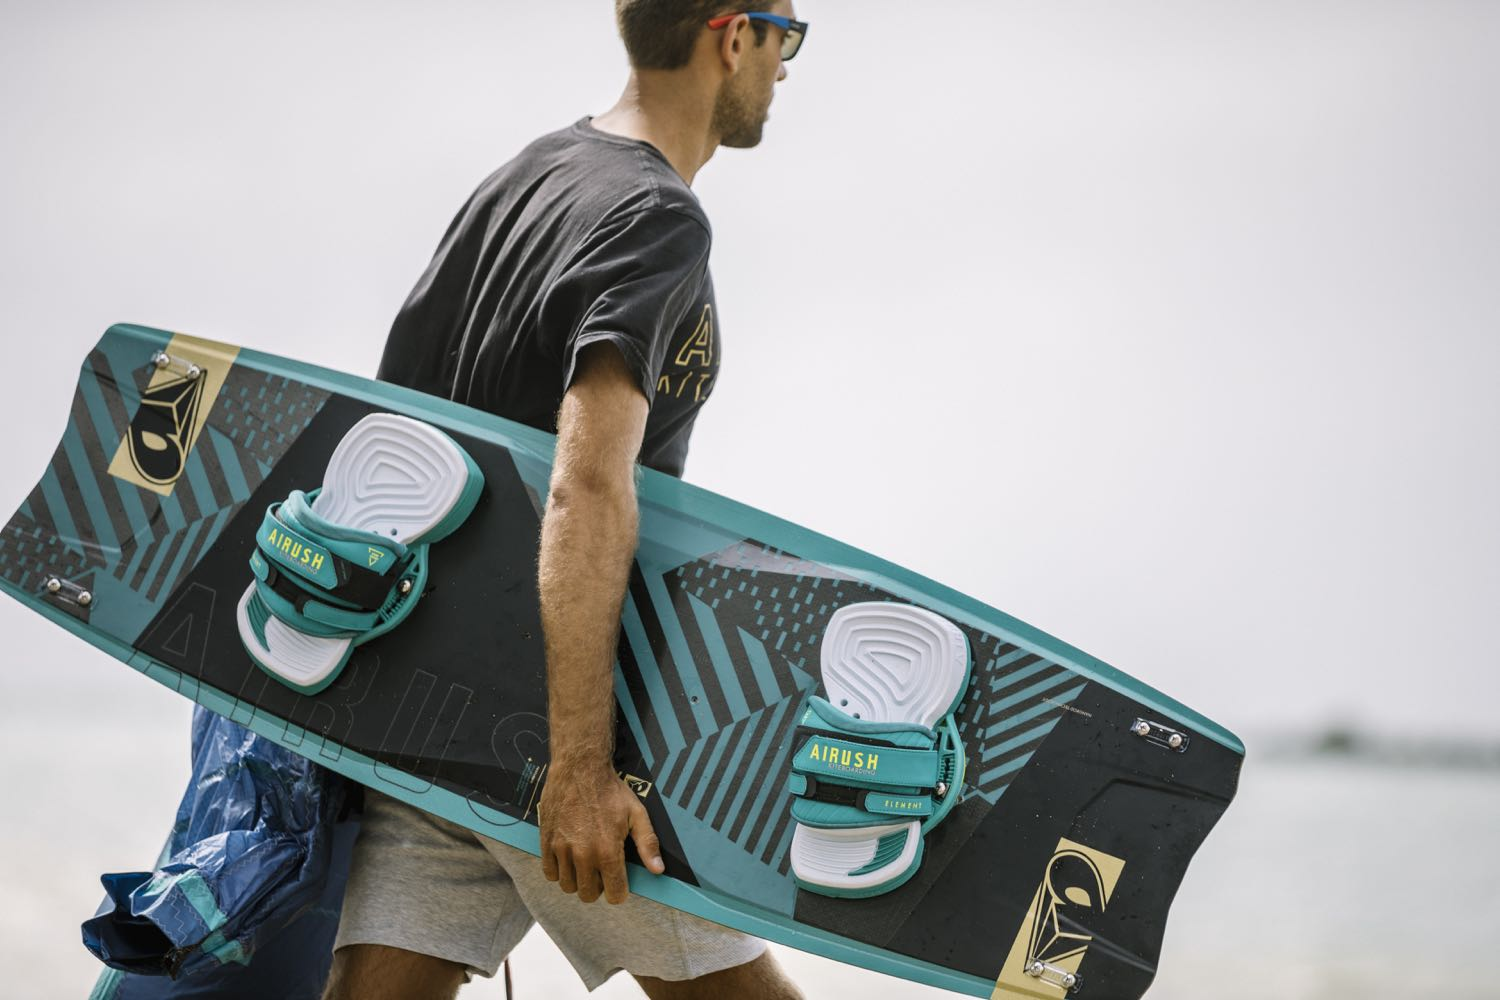 2018-Airush-Apex-TEAM-Kiteboard_119948B.jpg